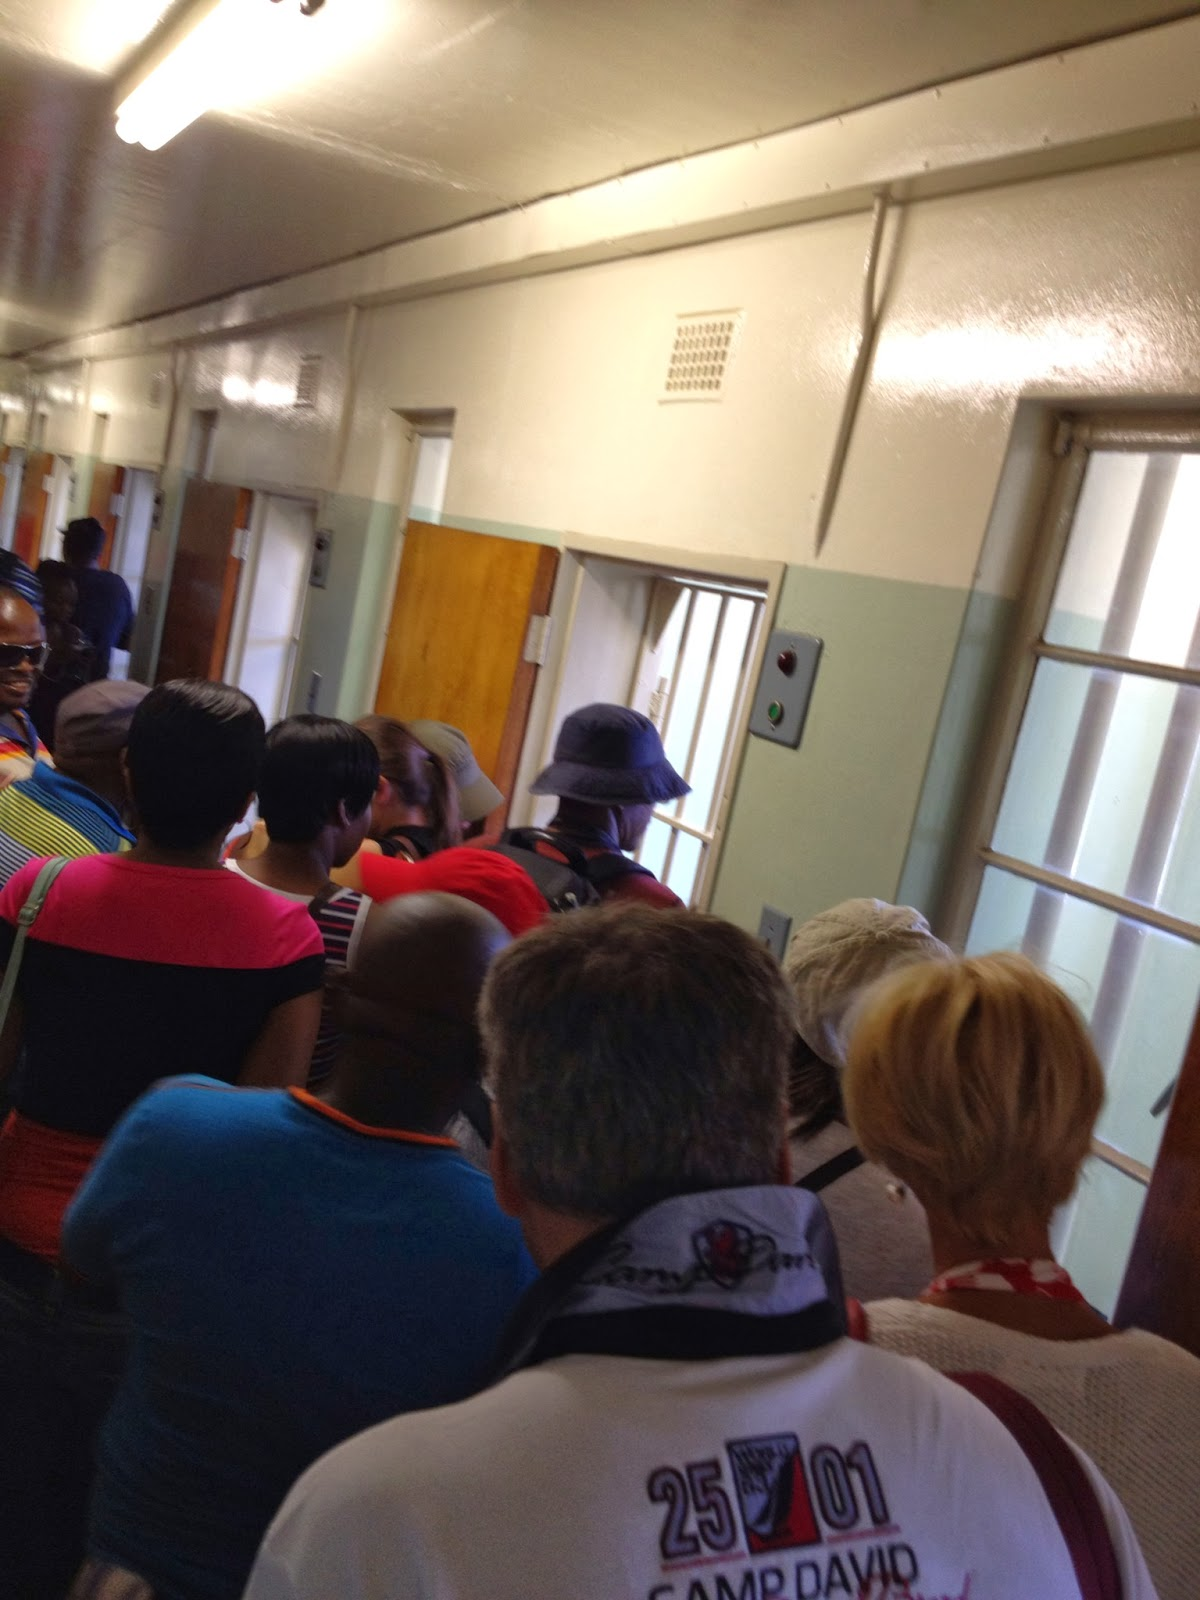 Robben Island - The crowd lines up to view Nelson Mandela's old prison cell